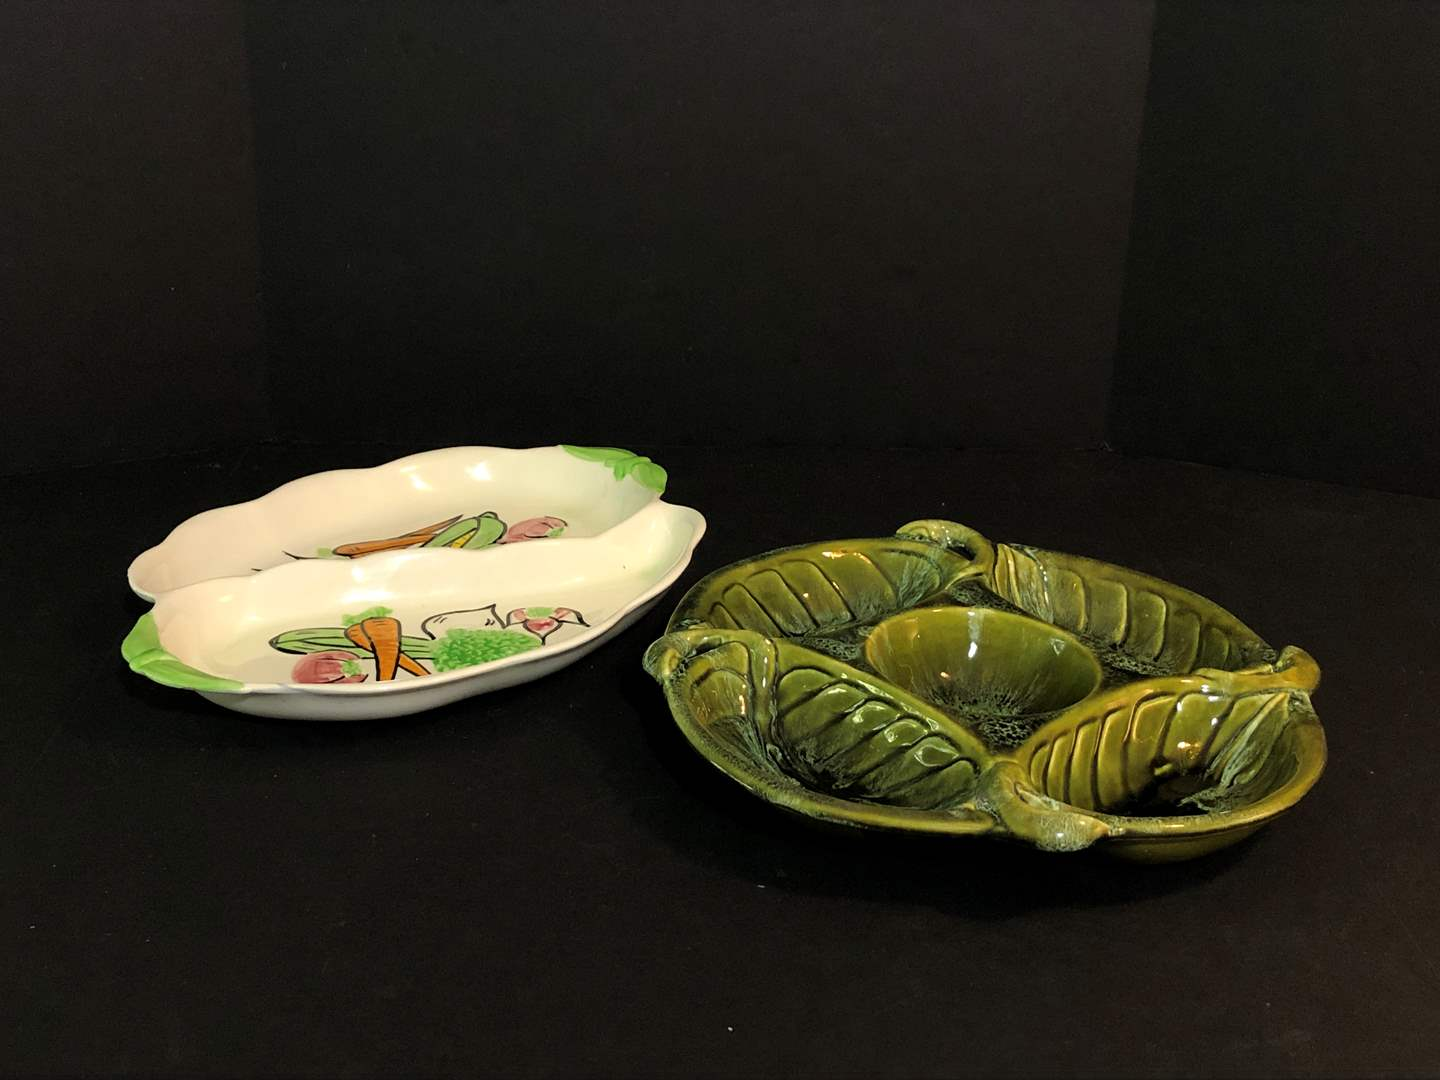 Lot # 69 - 2 Vintage California USA Snack Dishes Numbered #2302 & 722 (main image)